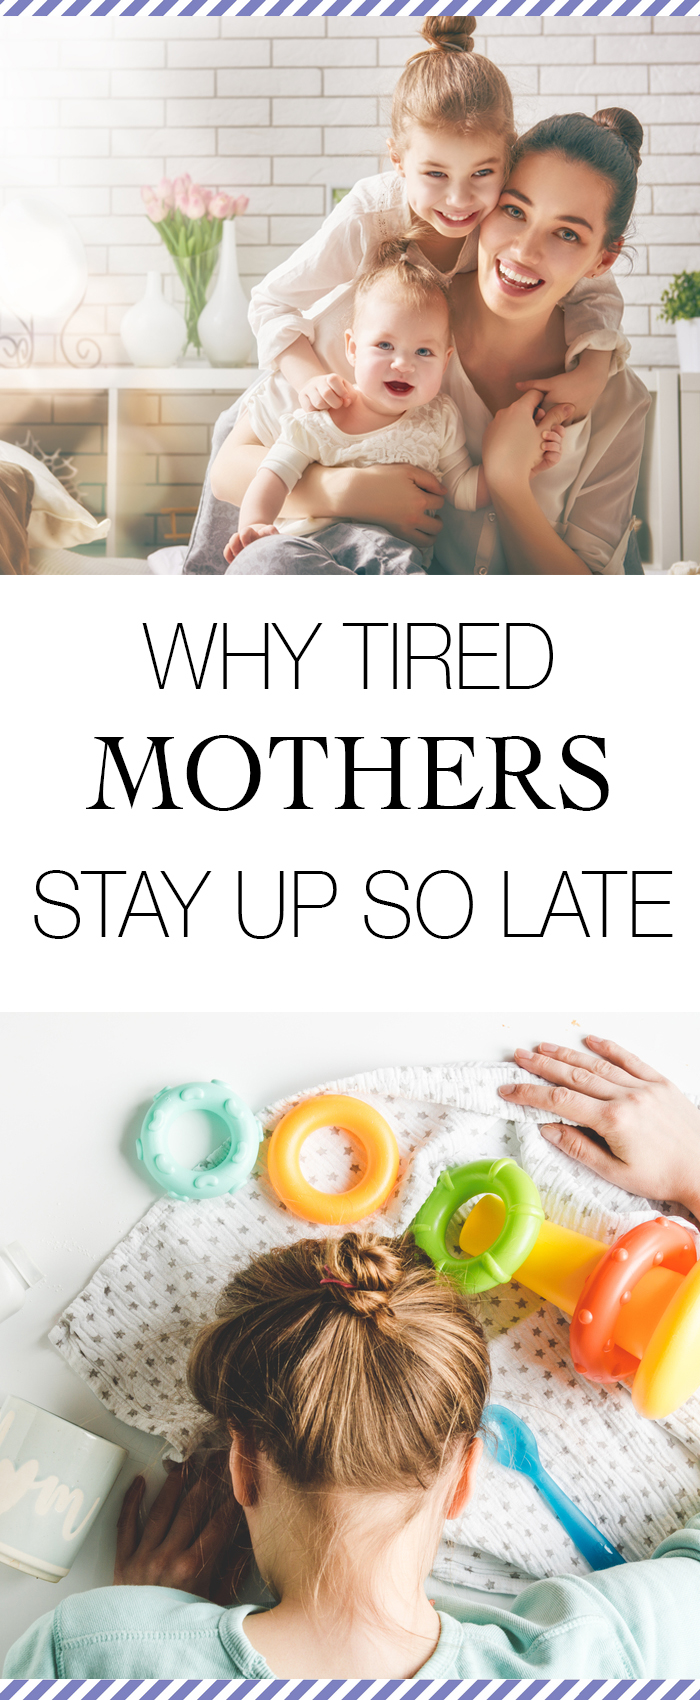 Why Tired Mothers Stay Up So Late www.herviewfromhome.com